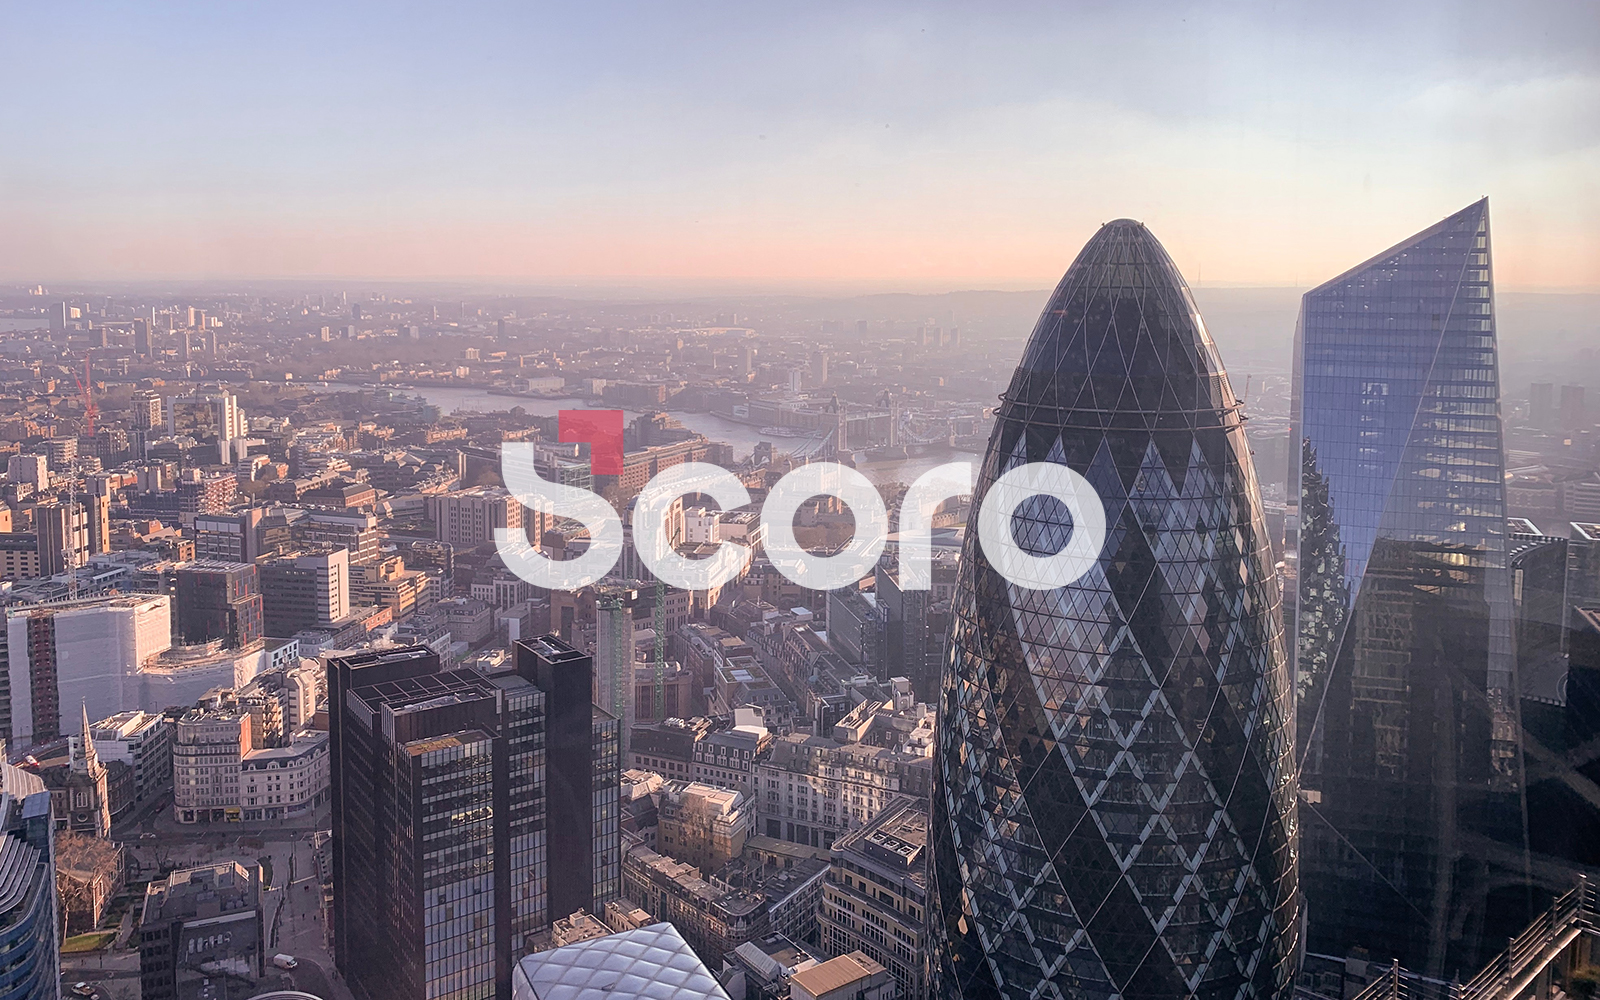 Scoro London Office